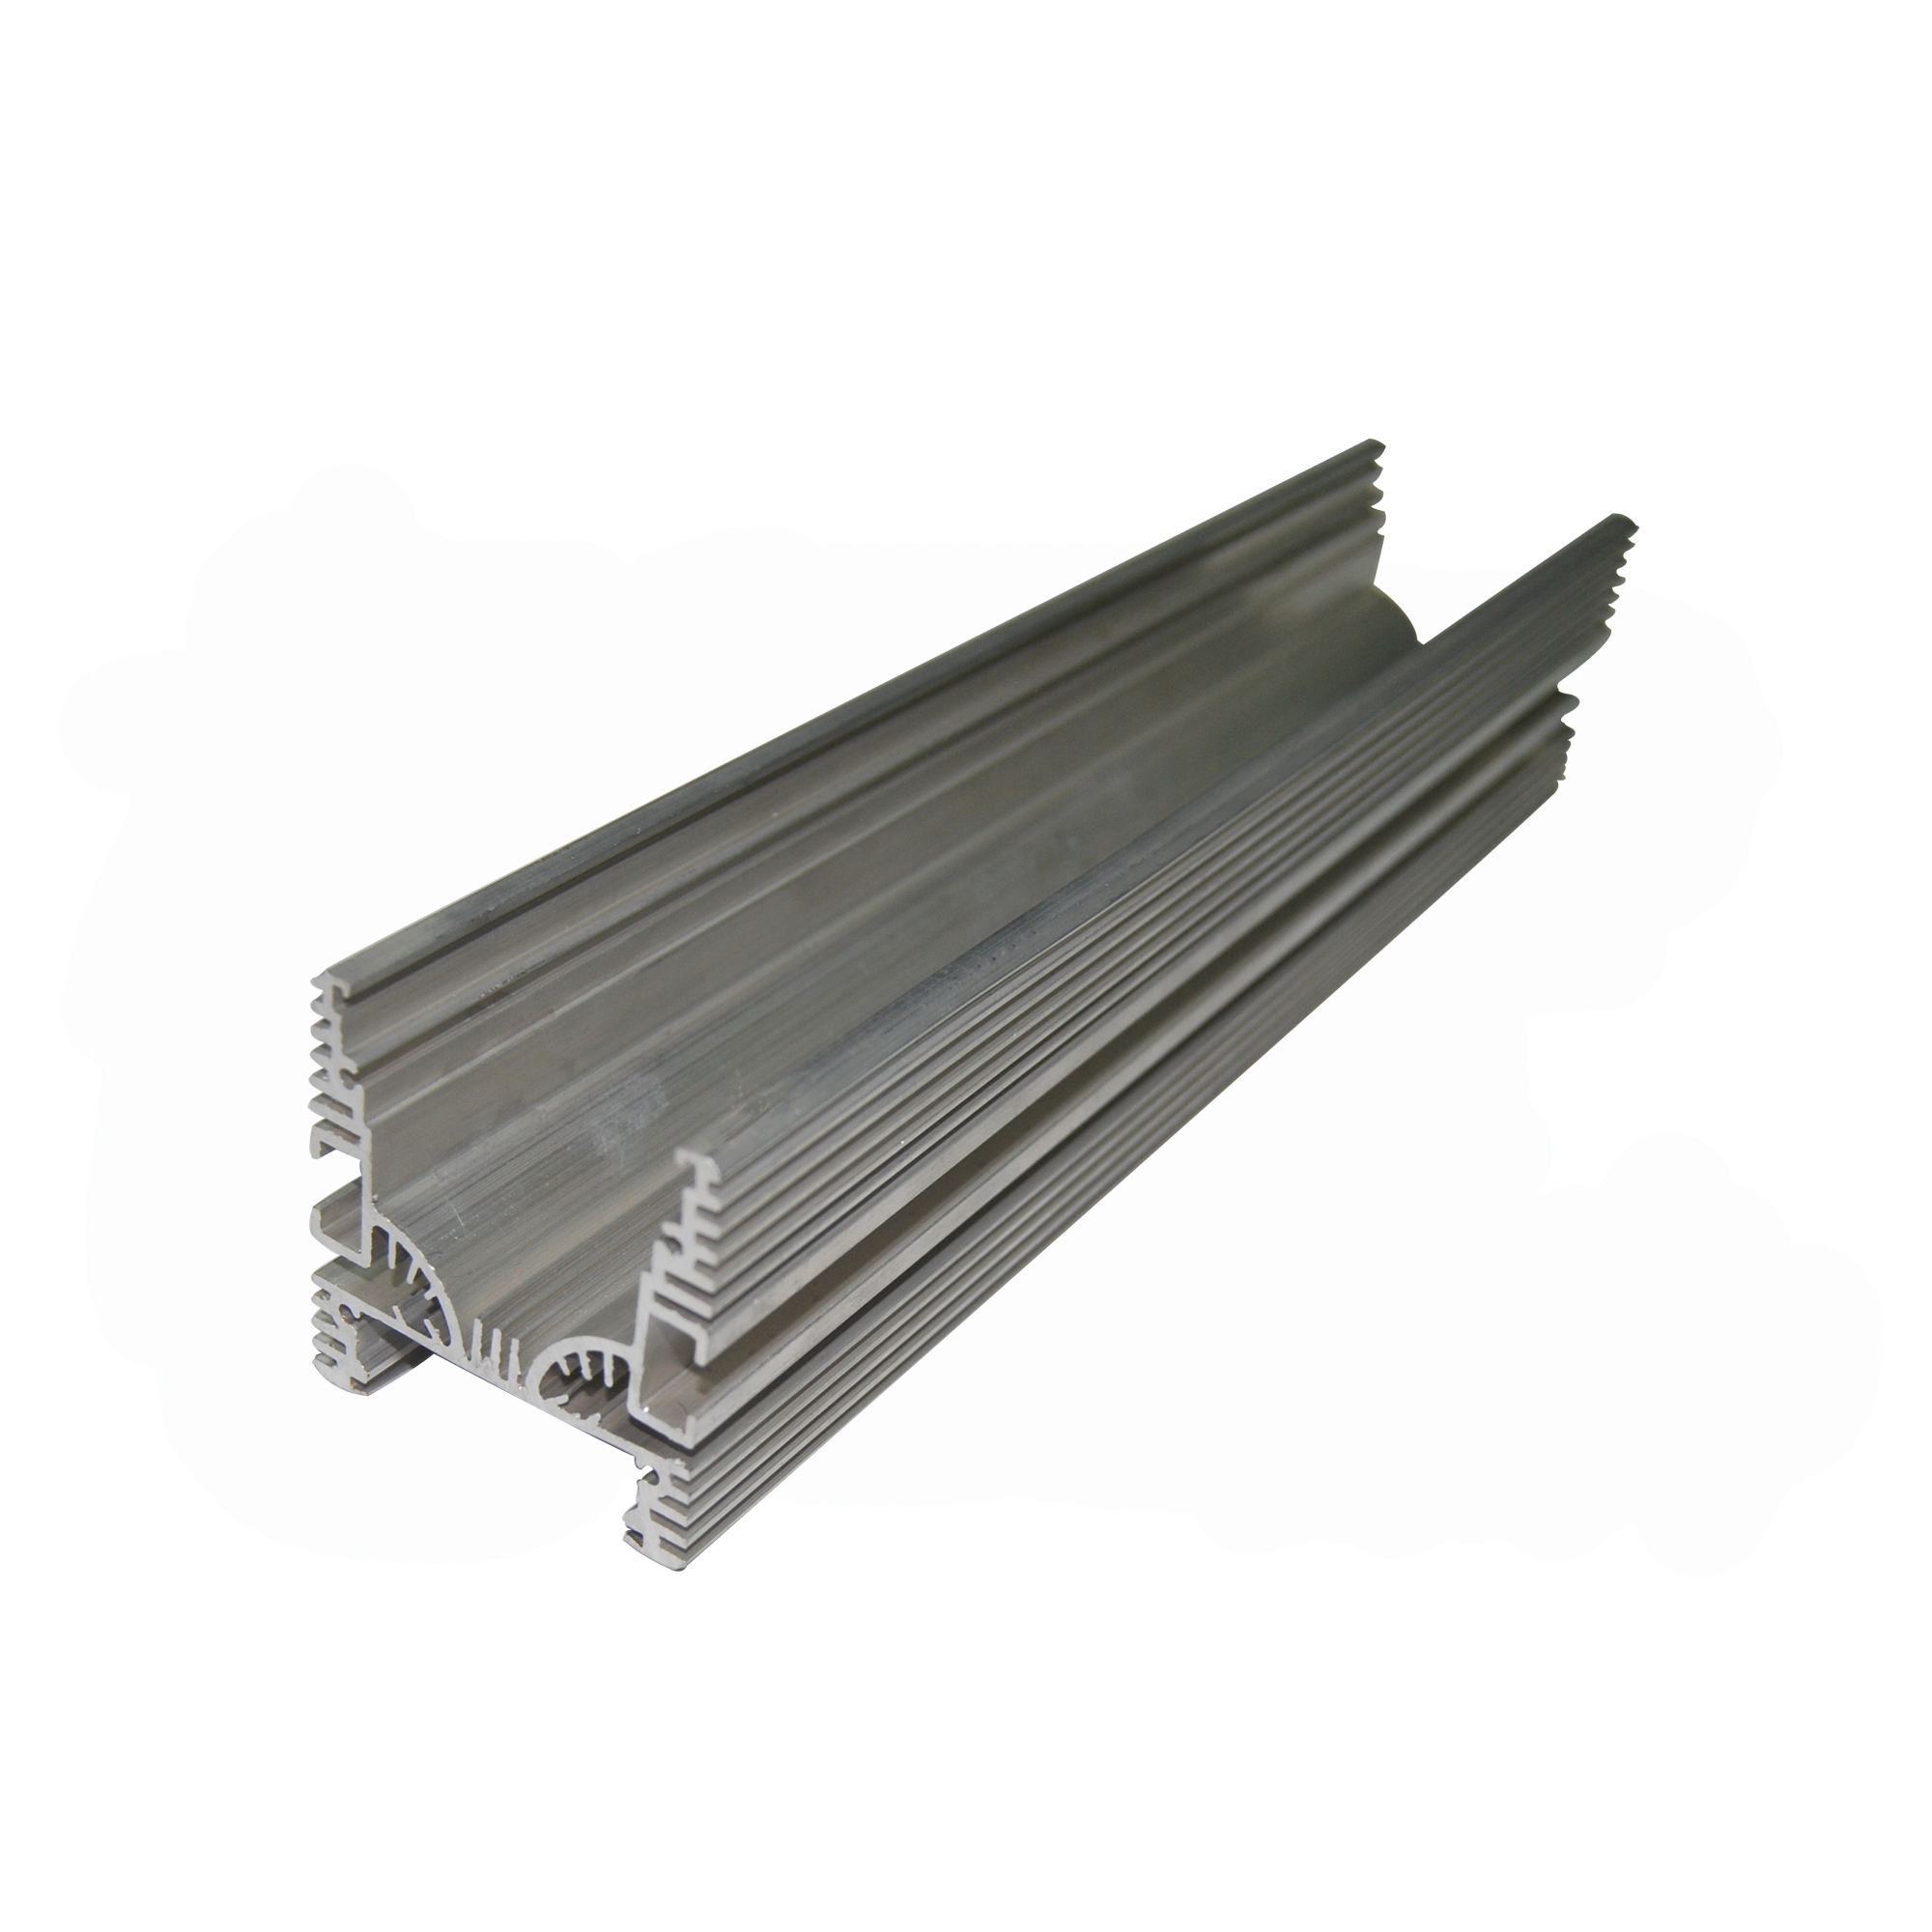 Extrusion 6063 6031 Aluminum Profile For Truck And Trailer